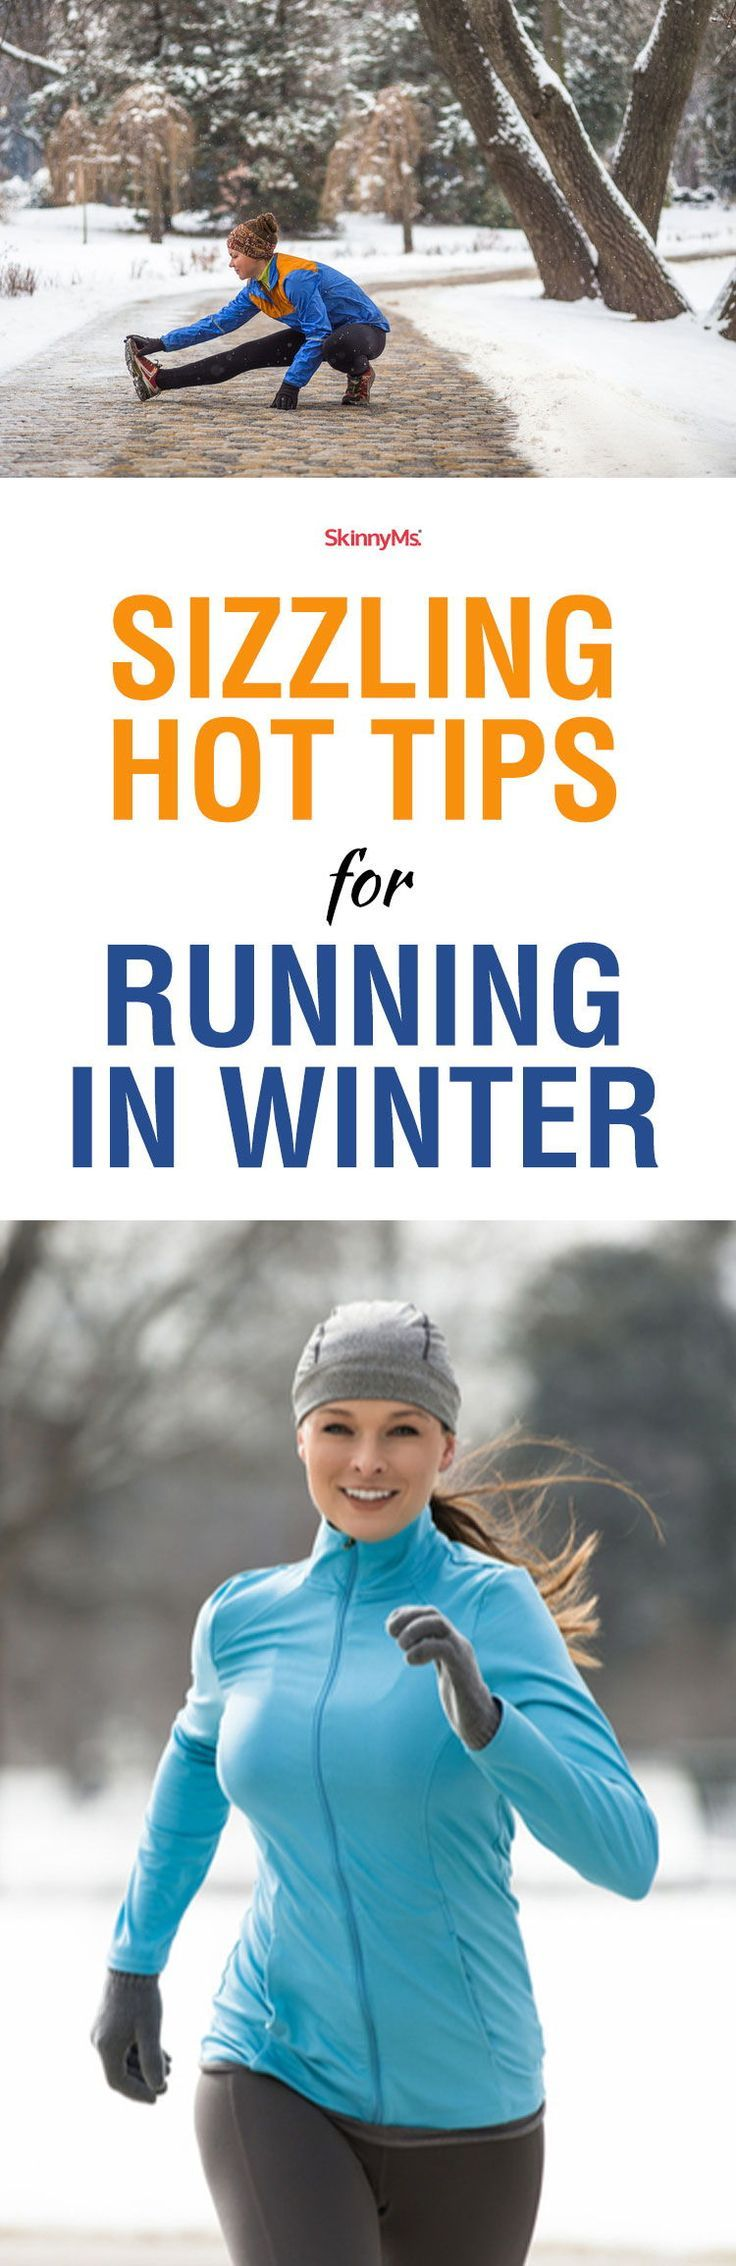 Sizzling Hot Tips for Running in Winter